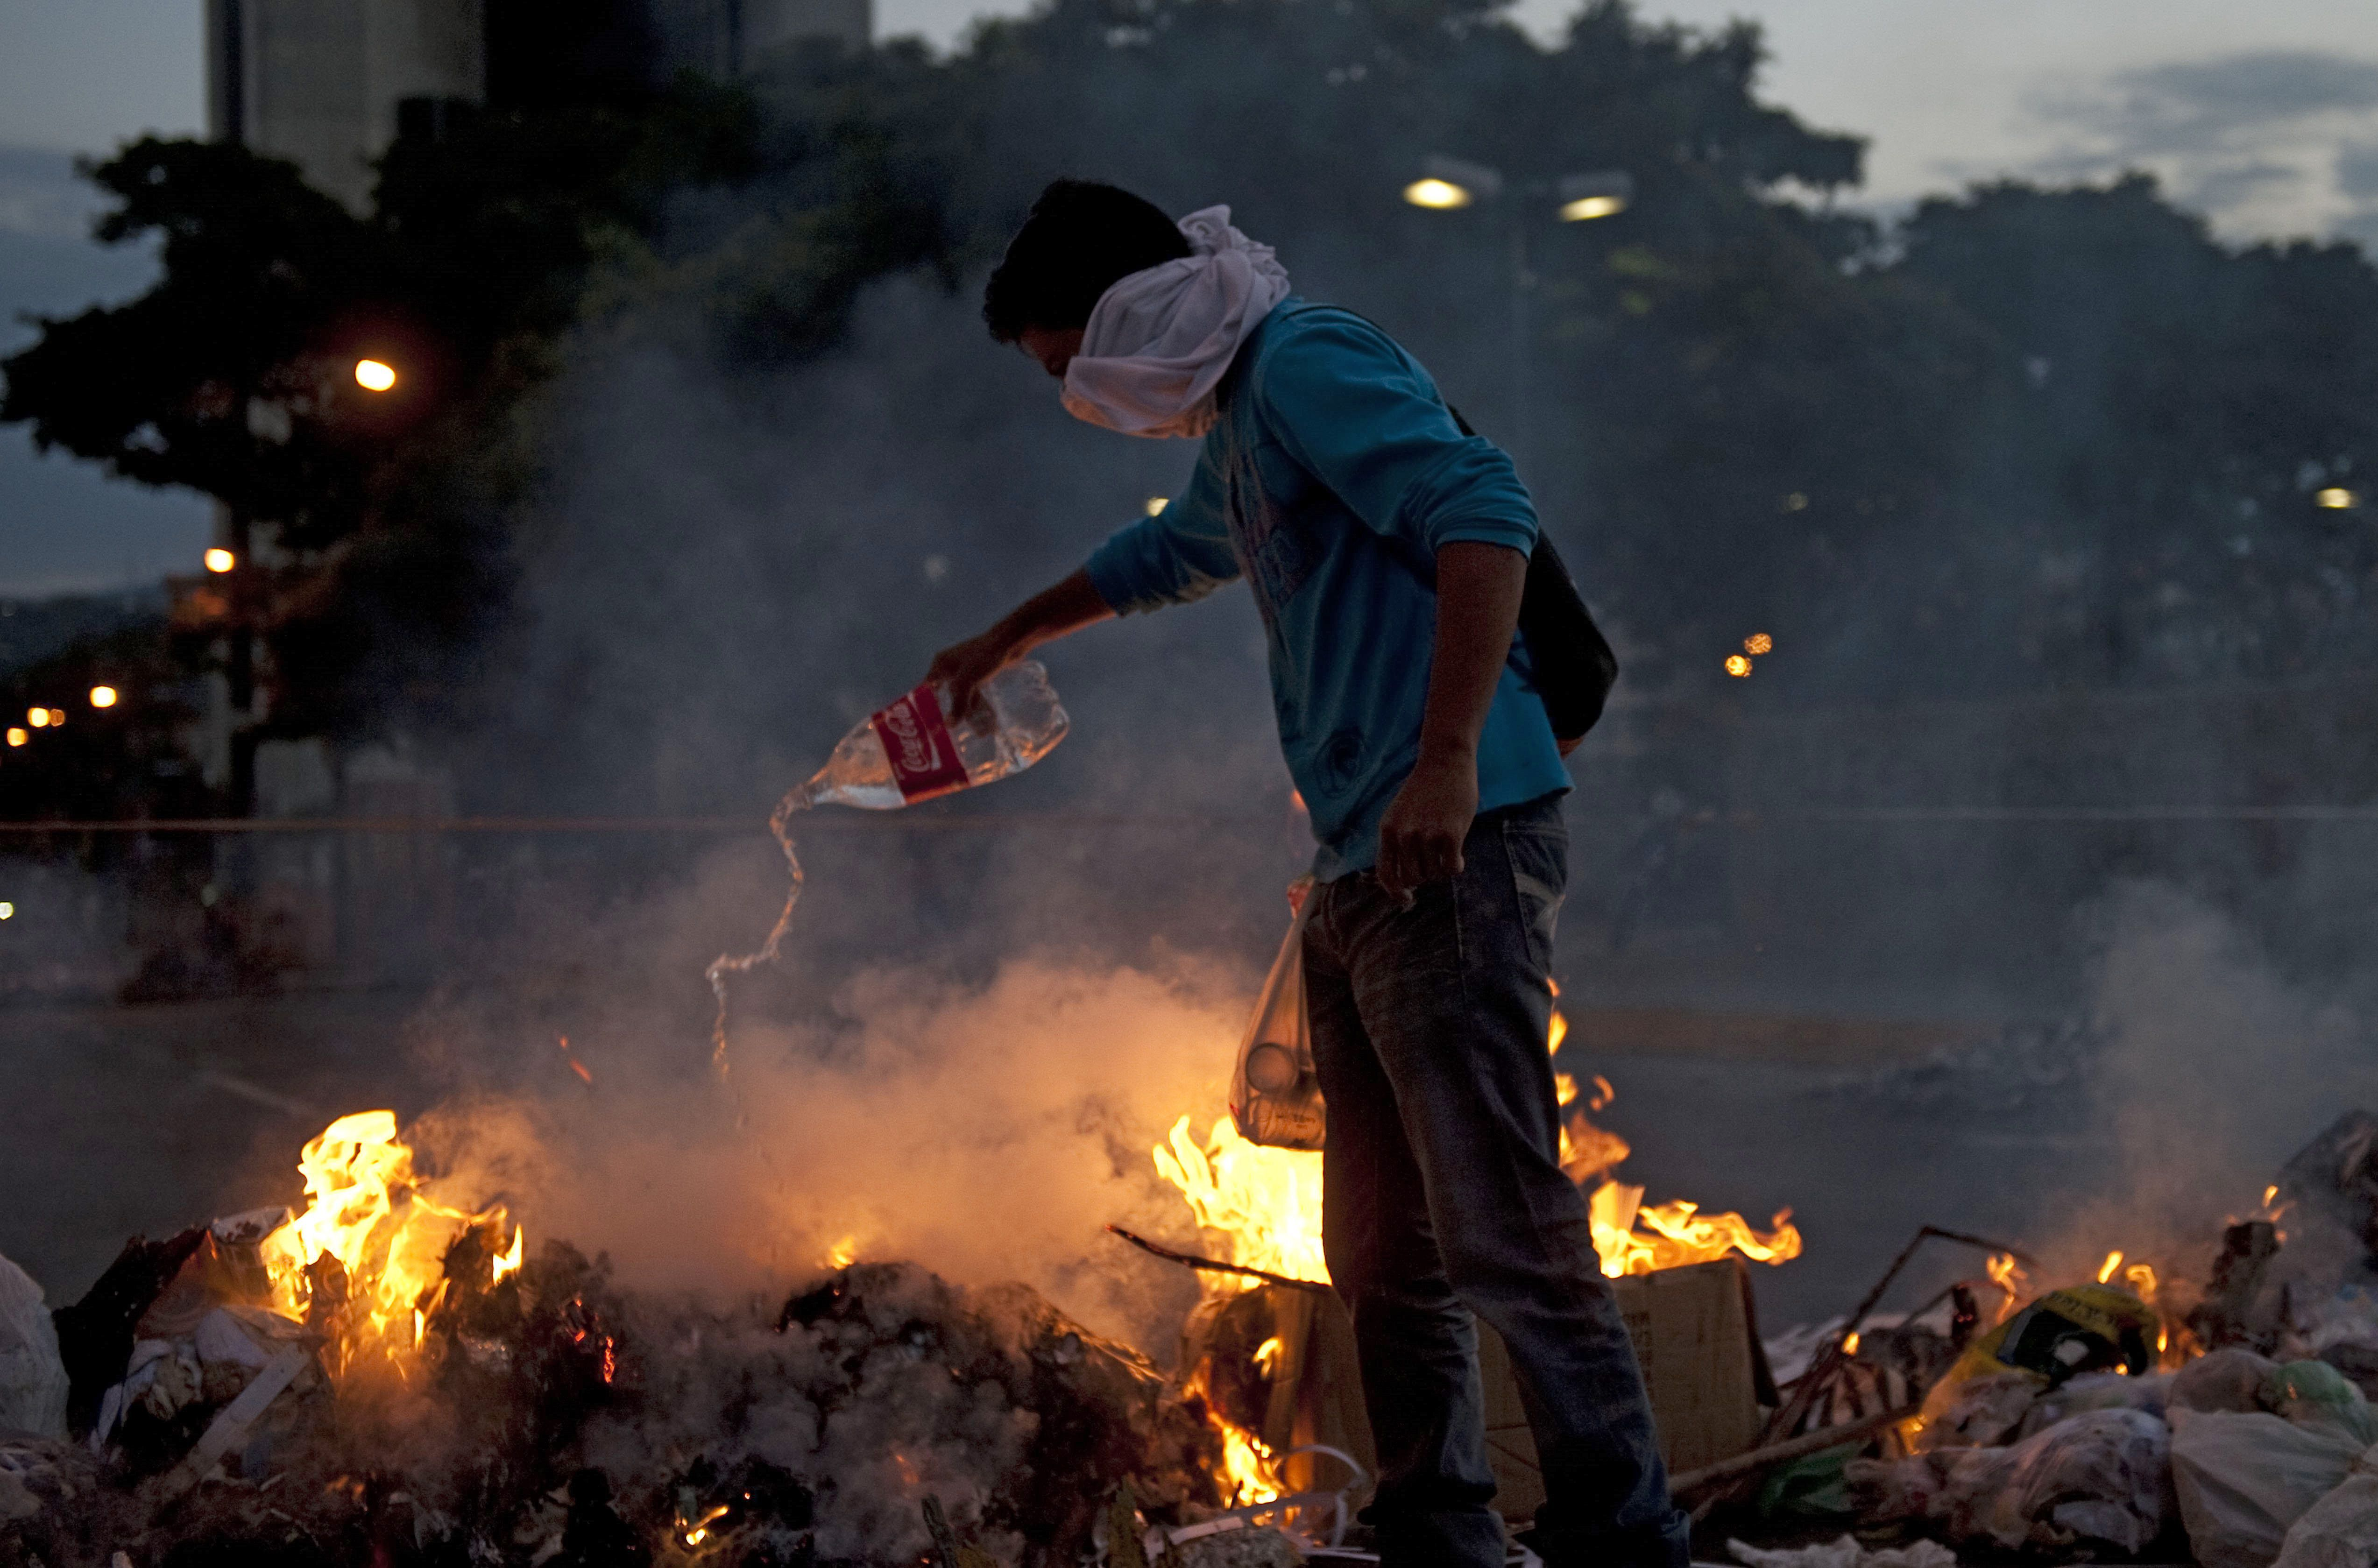 A Venezuelan anti-government student lights a fire during clashes with riot policemen following a protest, in Caracas on February 20, 2014. Venezuelan President Nicolas Maduro, successor of the late Hugo Chavez, is under fire over what protesters say is rampant crime, runaway inflation, high unemployment and other economic problems.   (AFP PHOTO / Raul ARBOLEDA)